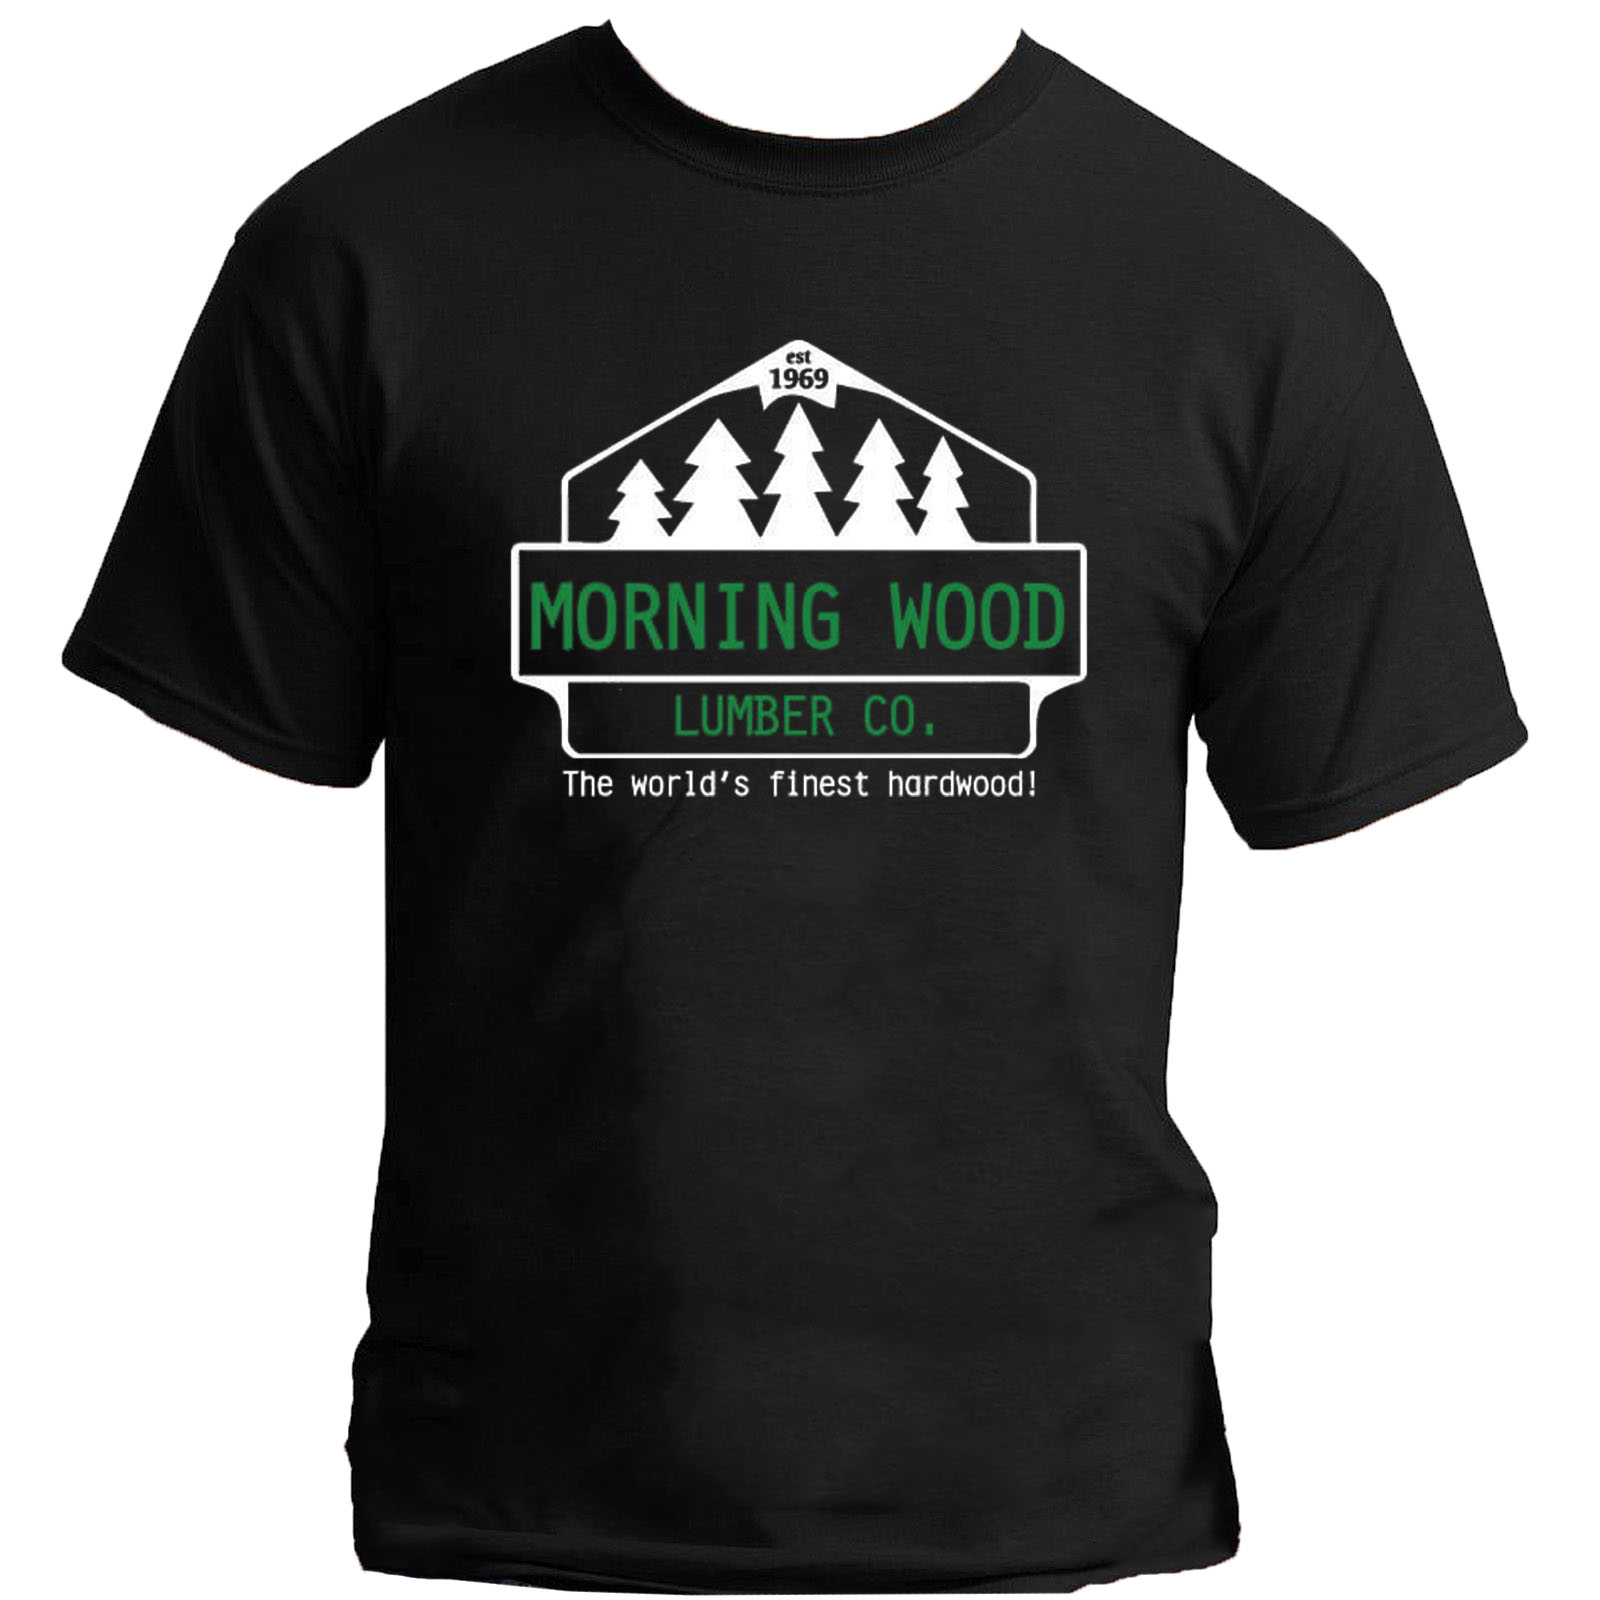 Morning Wood Lumber Company <font><b>Shirt</b></font> <font><b>Funny</b></font> Adult Guy <font><b>Sex</b></font> Humor Party Dude Joke 69 image